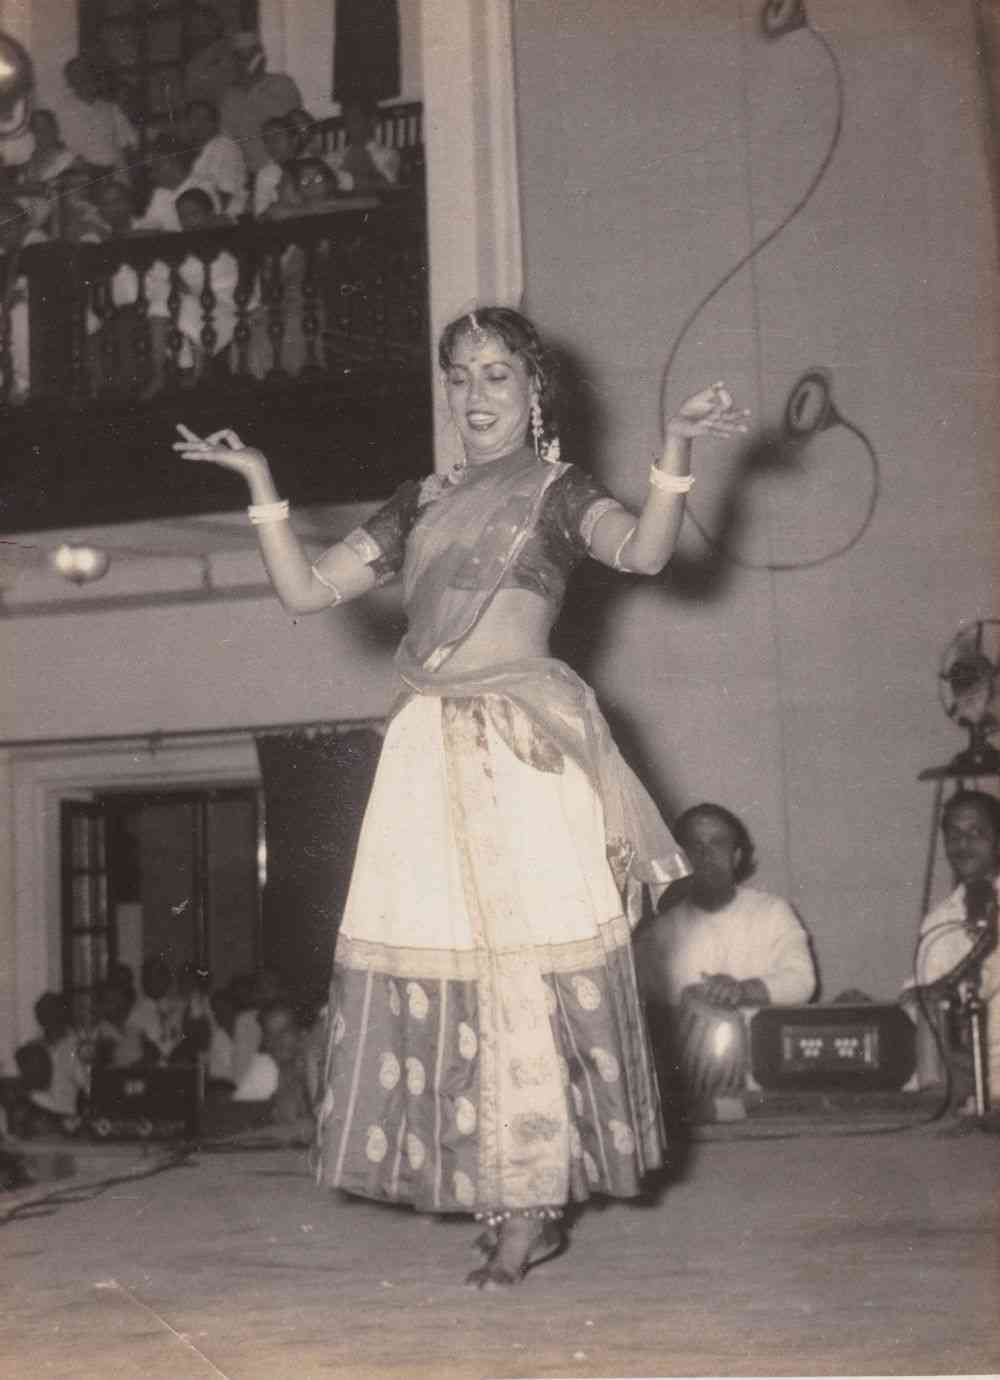 A glimpse of Sitara Devi's iconic 'Mor' (peacock) and 'Holi' themes that she created and become synonymous with. Photo courtesy: The Barot family archives.